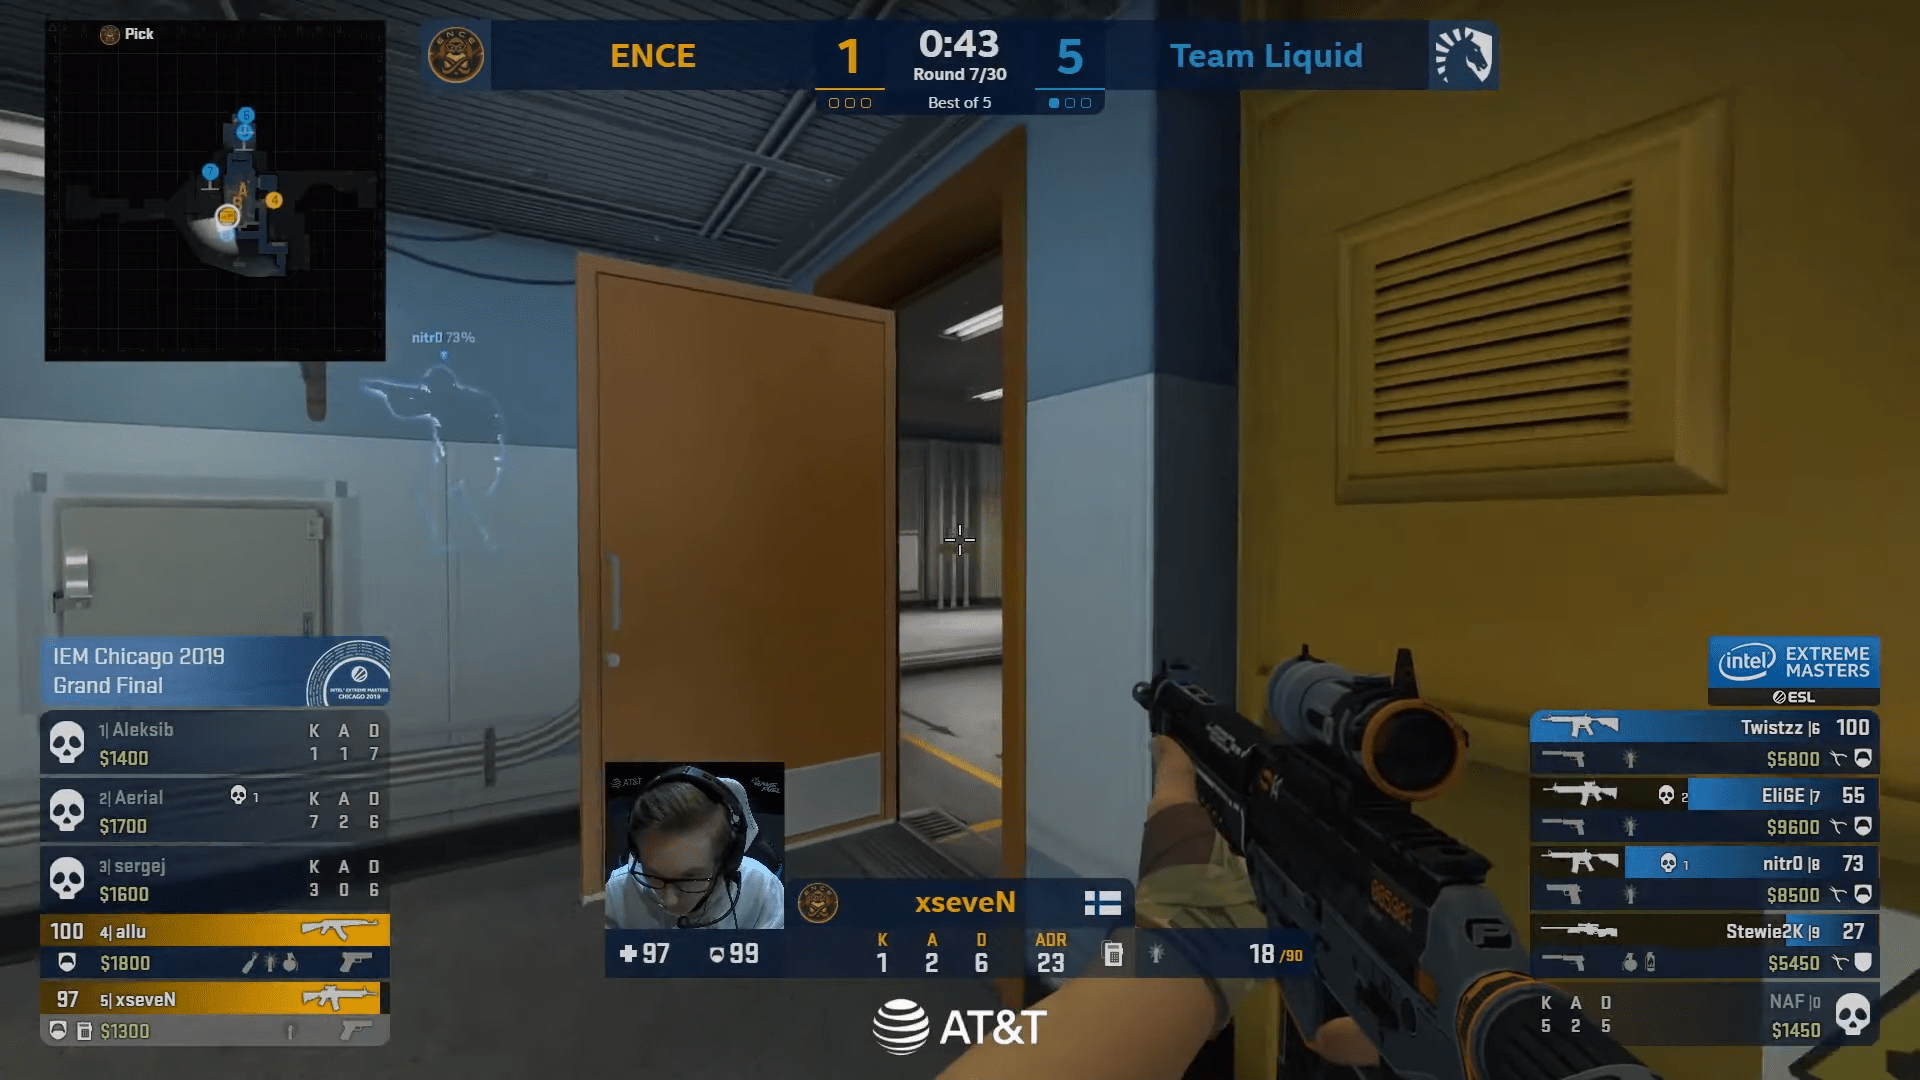 CS:GO – Endpoint Picks Up A Strange Achievement In Professional Play Against MAD Lions At Dreamhack